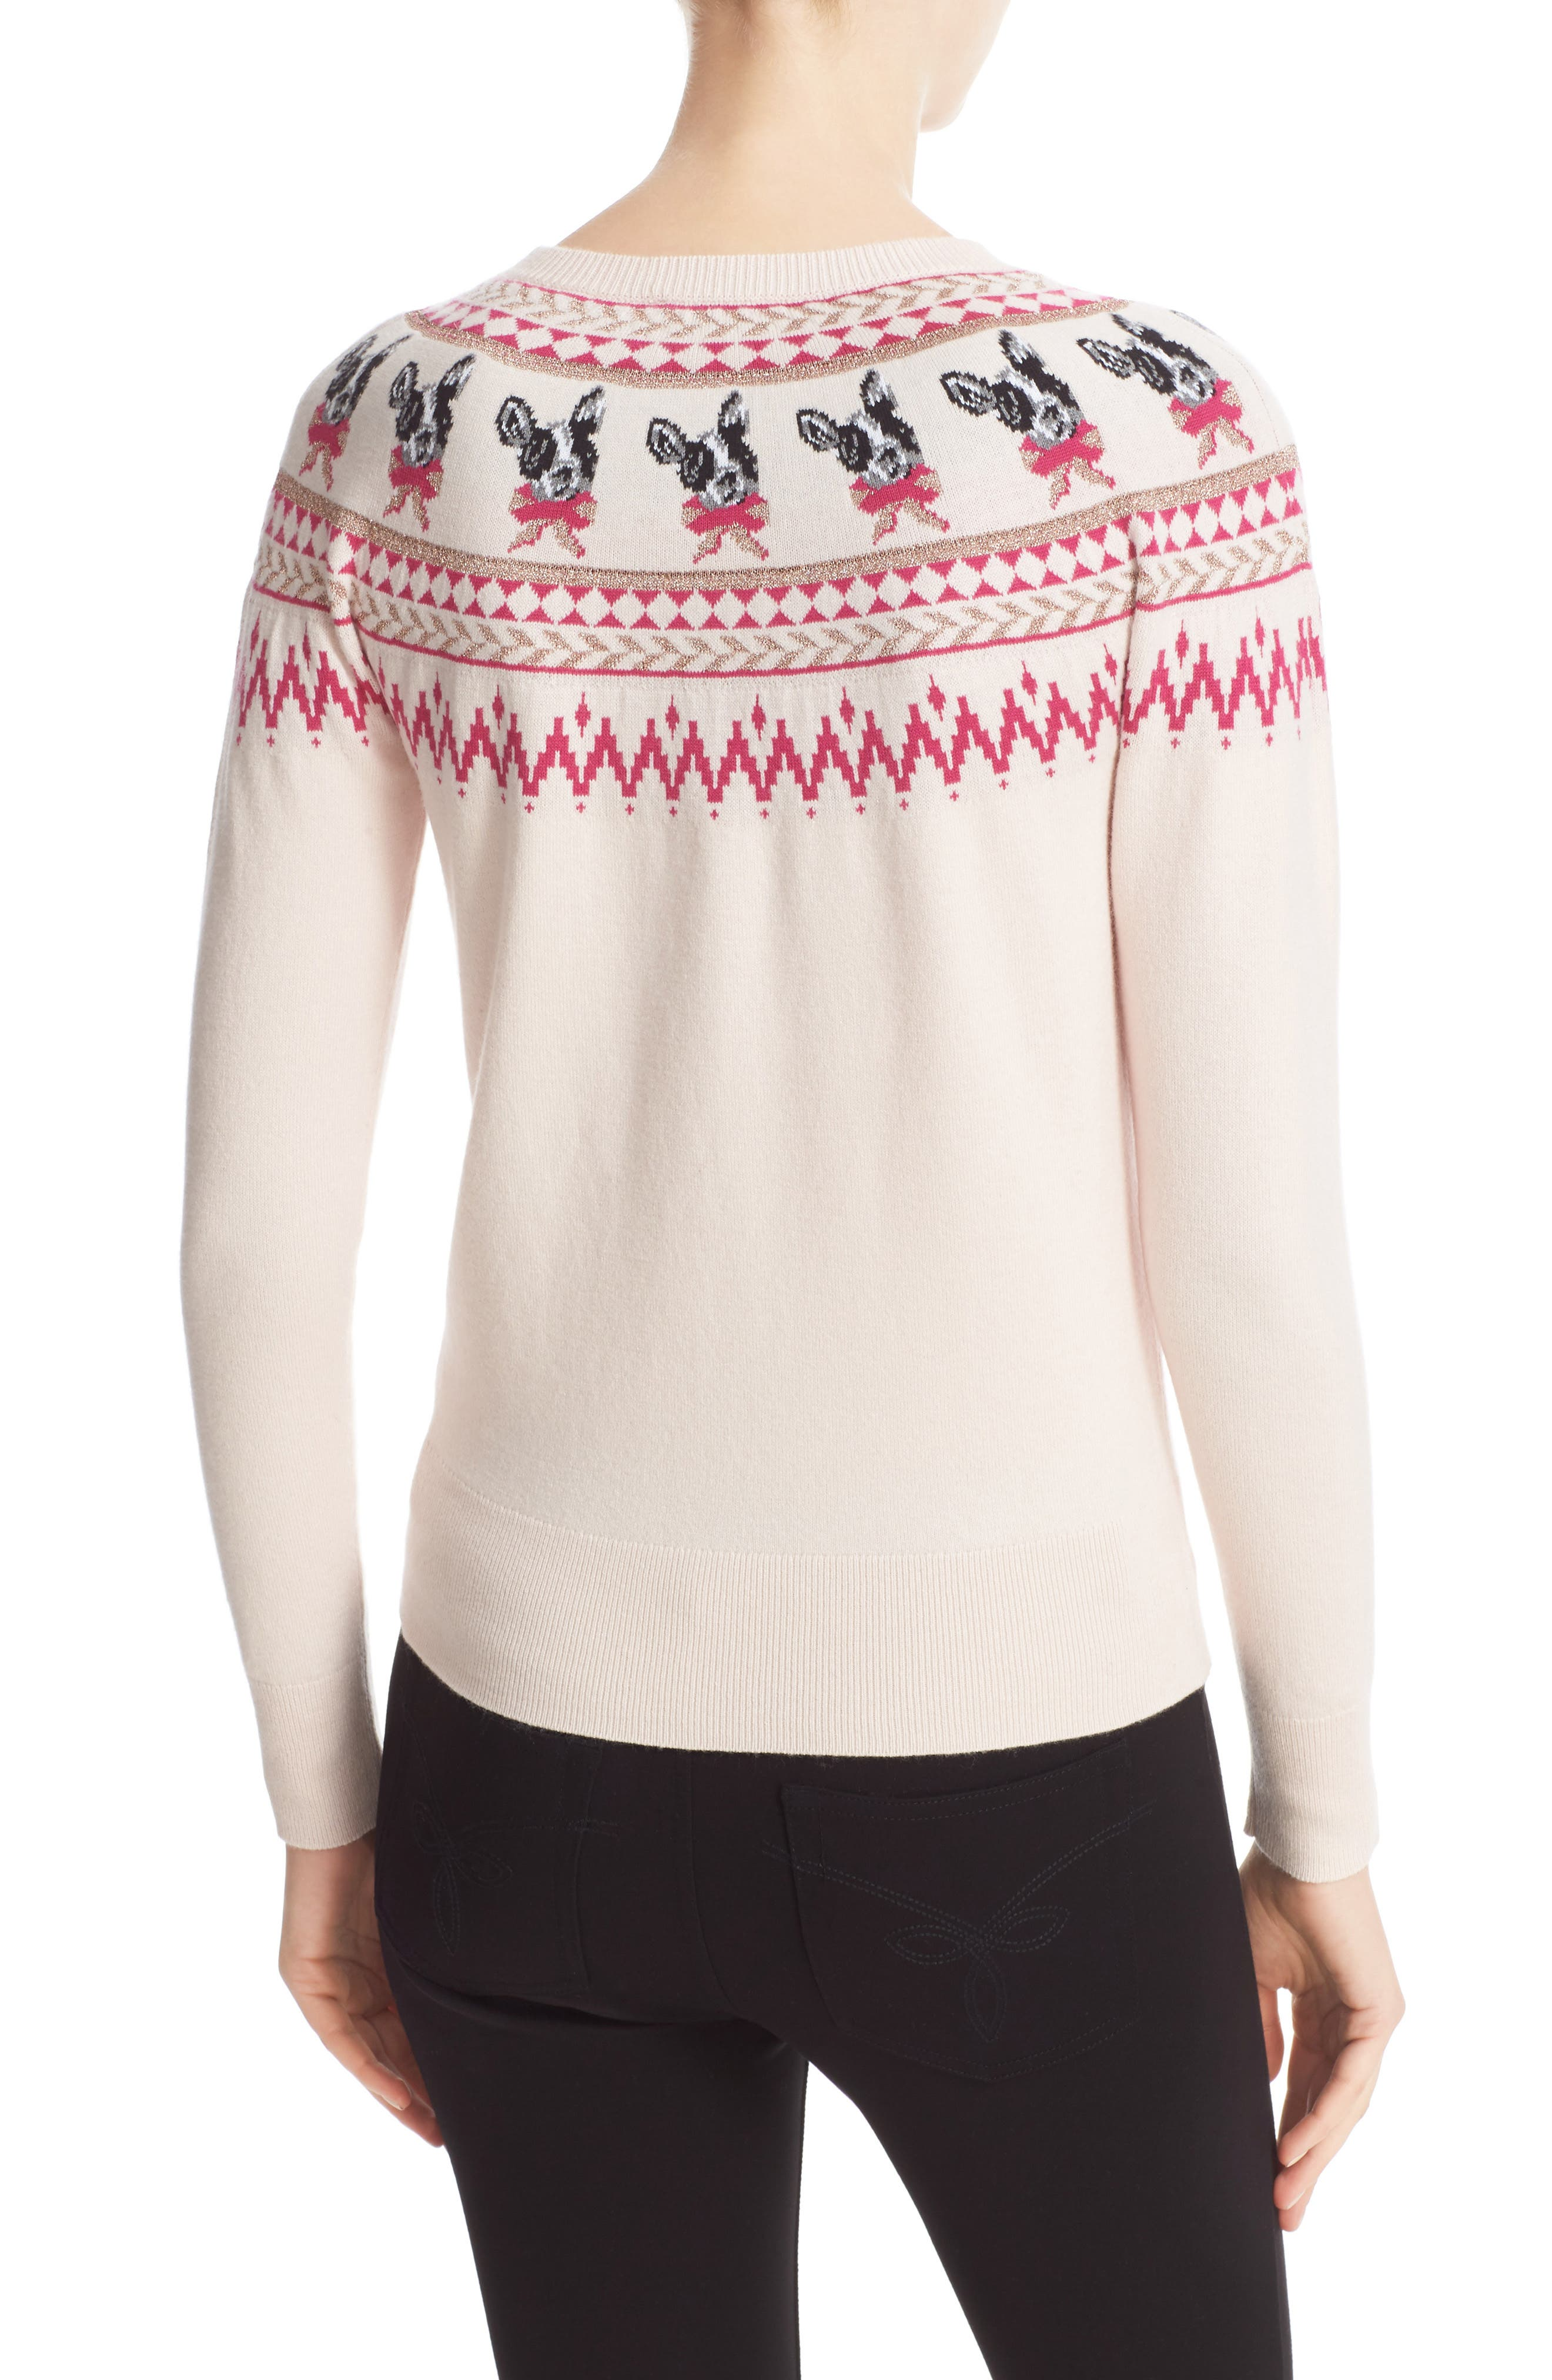 TED BAKER LONDON,                             Merry Woofmas Fair Isle Pullover,                             Alternate thumbnail 2, color,                             272